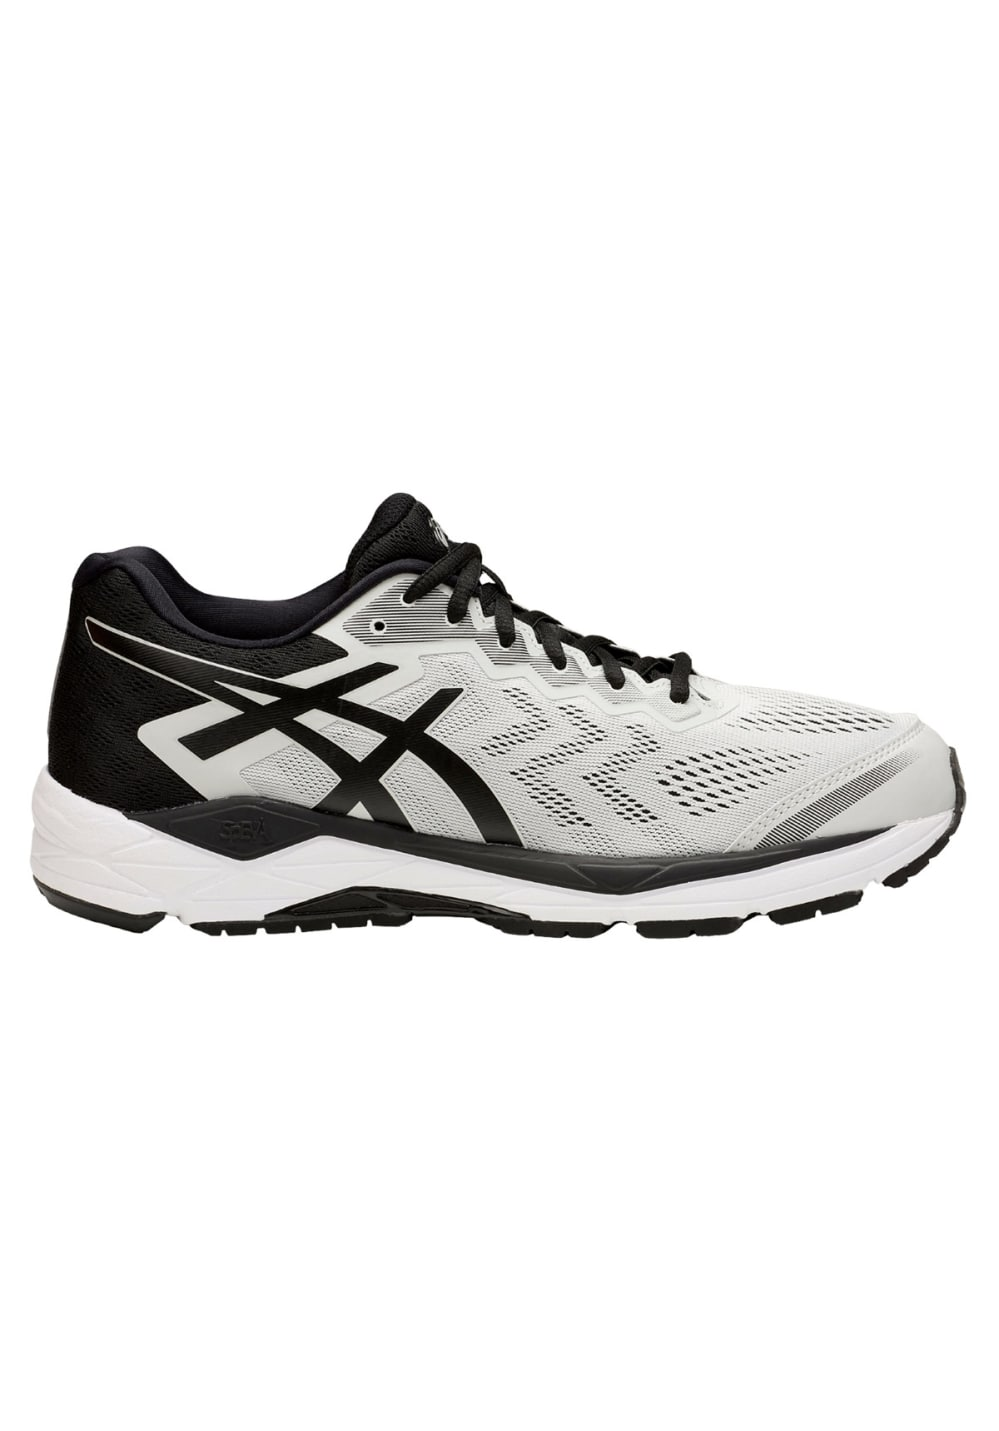 ASICS GEL Fortitude 8 (2E) Chaussures running pour Homme Blanc